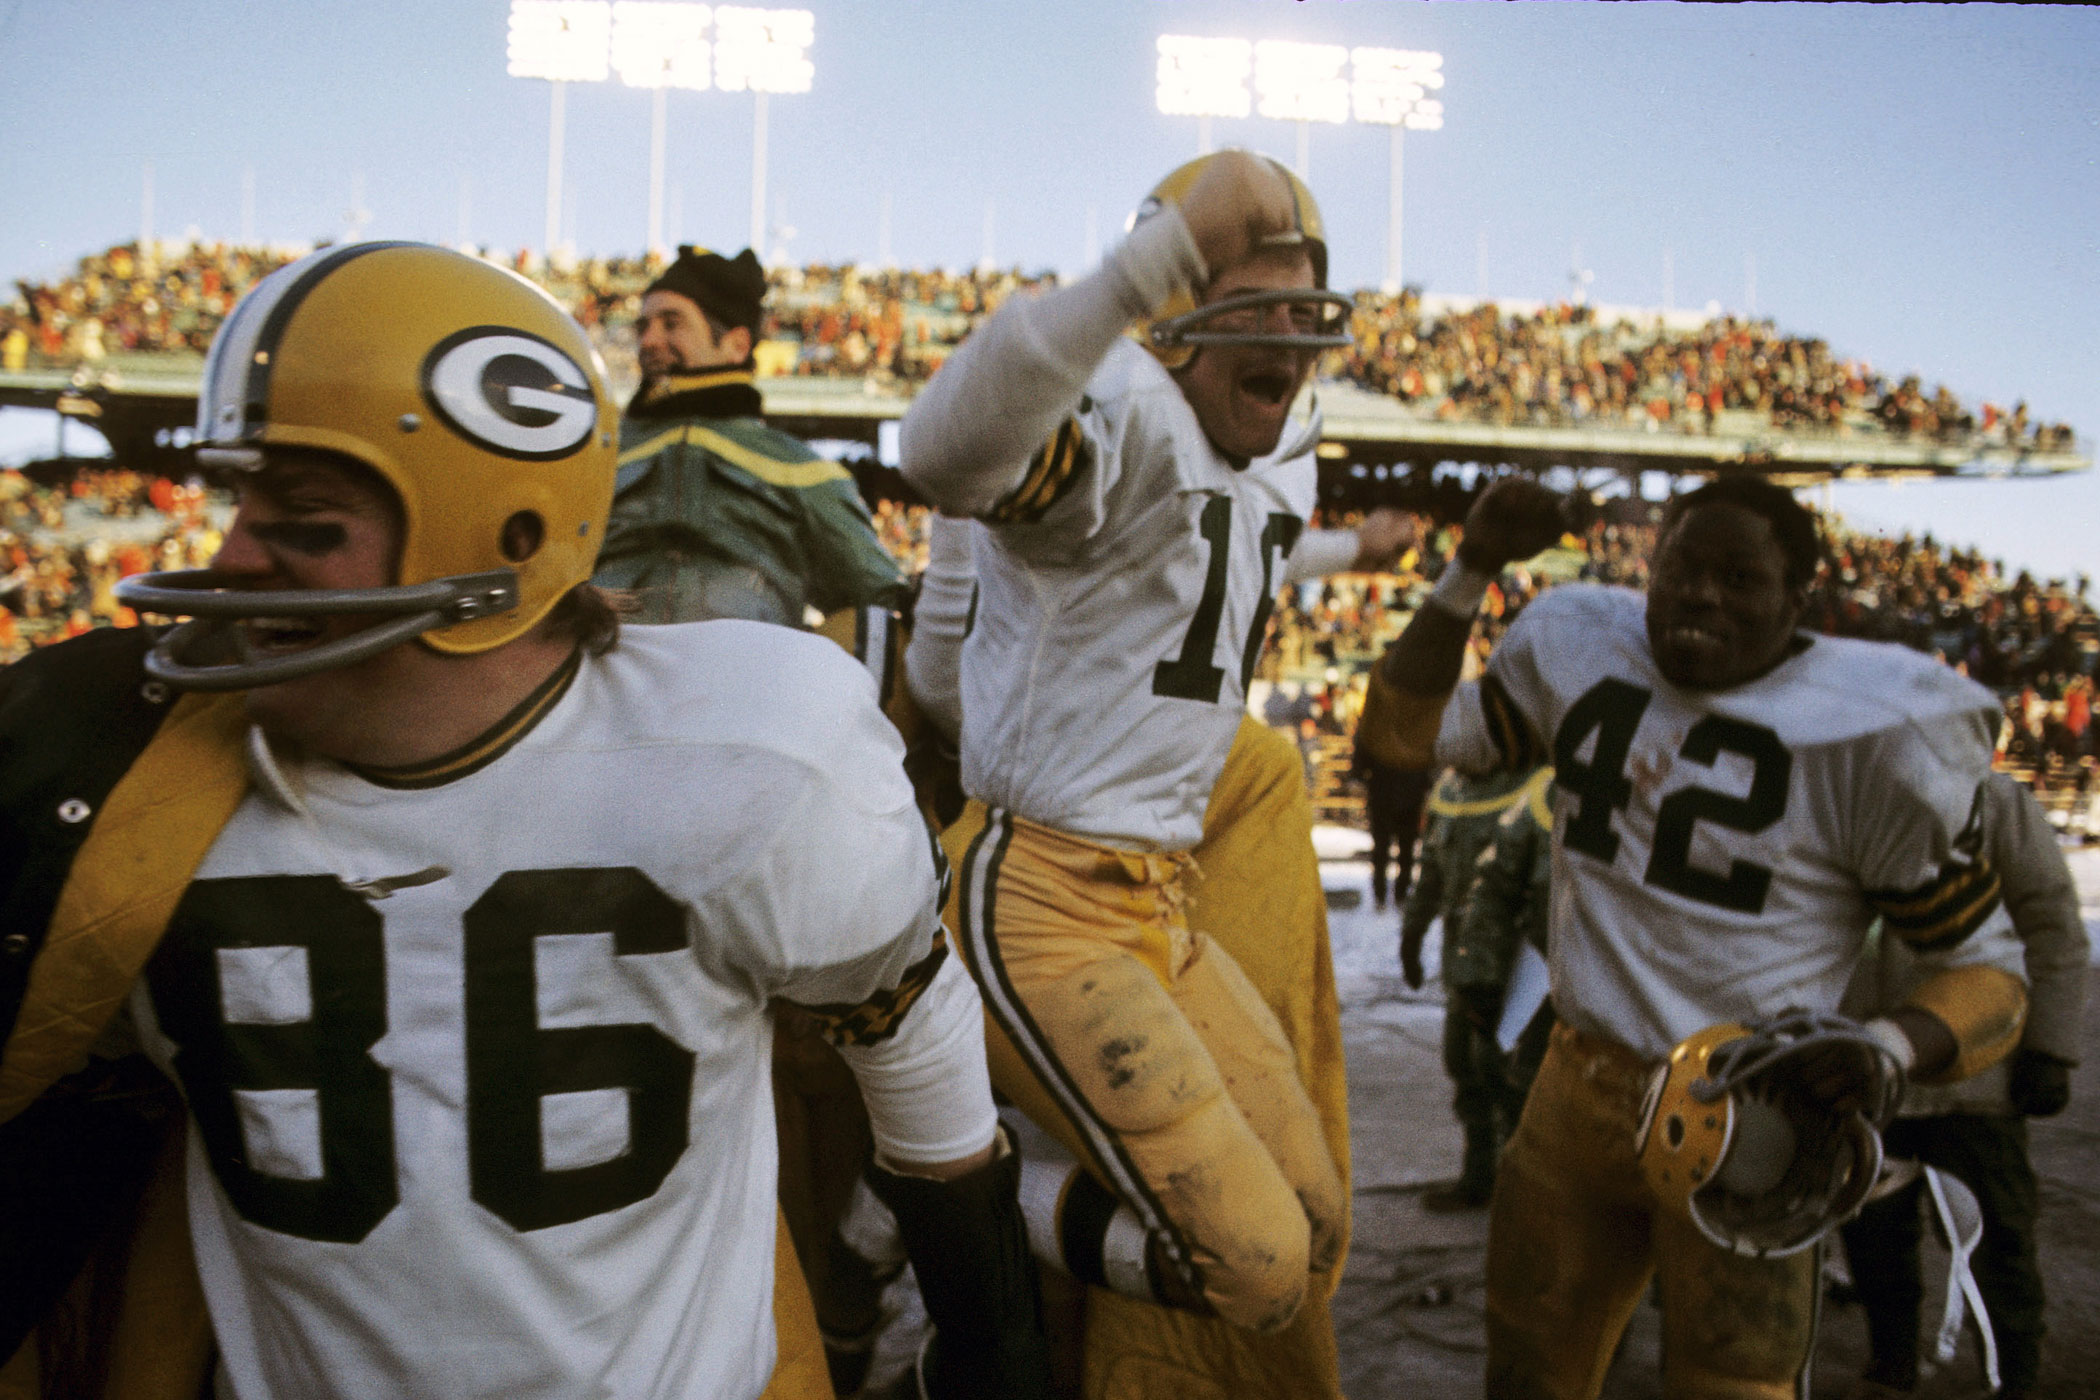 Temperature: 0°F (Wind Chill: -18°F).                               On Dec. 10, 1972, the Green Bay Packers faced the Minnesota Vikings in an NFL football game. Here, tight end Pete Lammons (86), quarterback Scott Hunter (16), and running back John Brockington (42) celebrate the Packer's victory at Metropolitan Stadium in Bloomington, Minn.